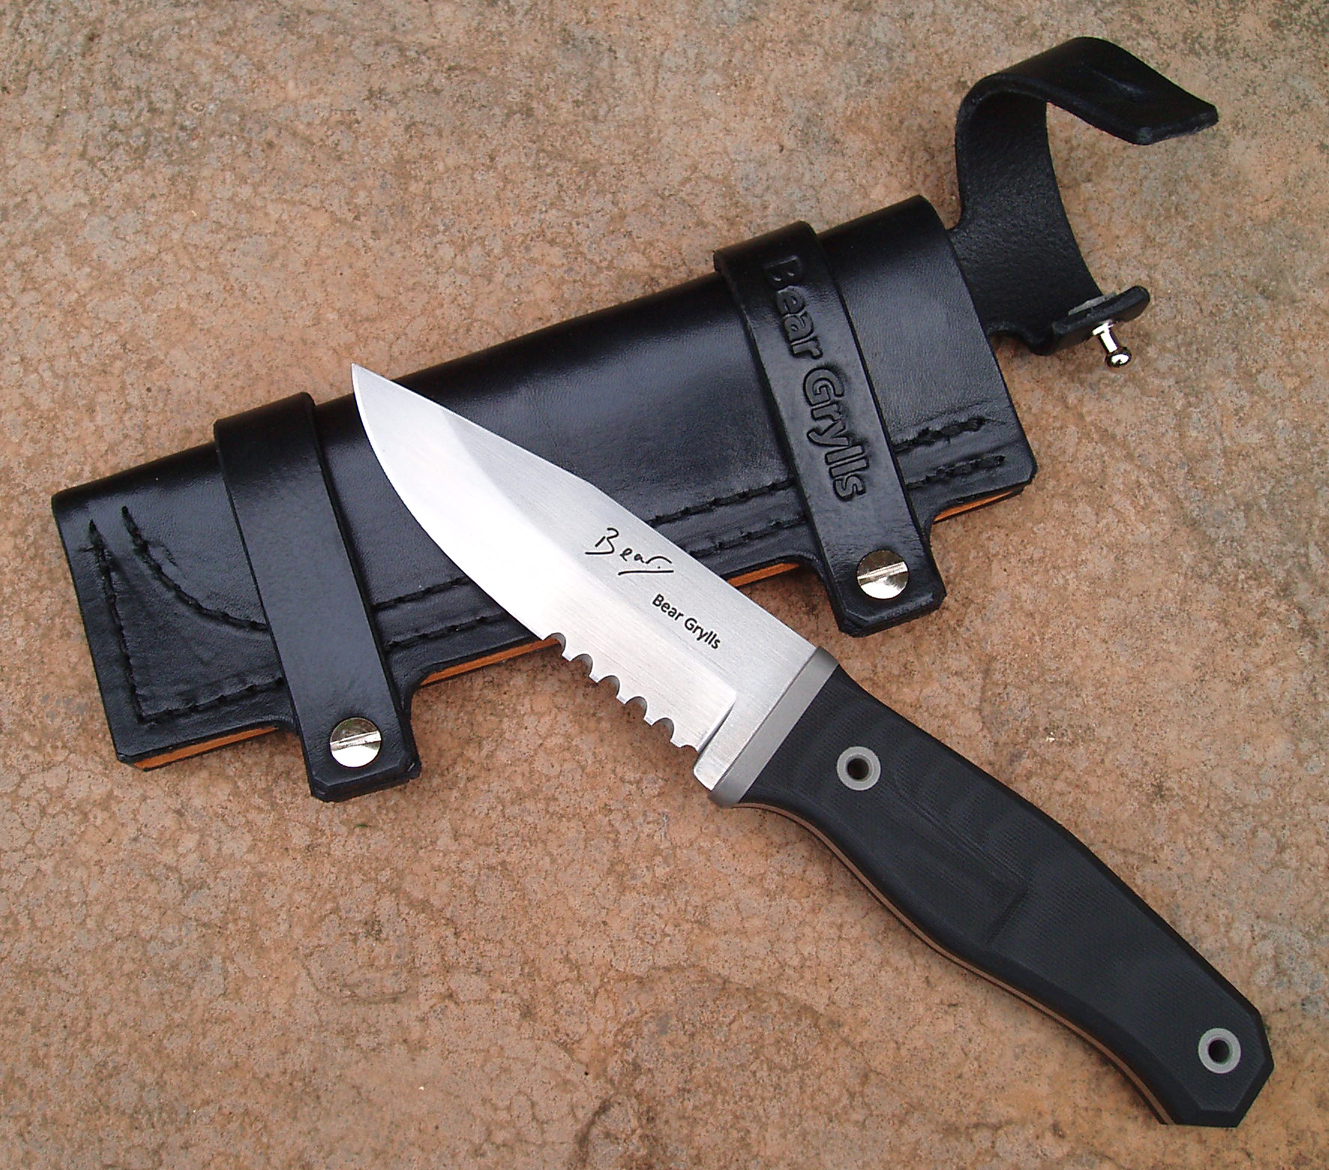 Watch out Rambo - Bear Grylls has a knife now! - The Knife